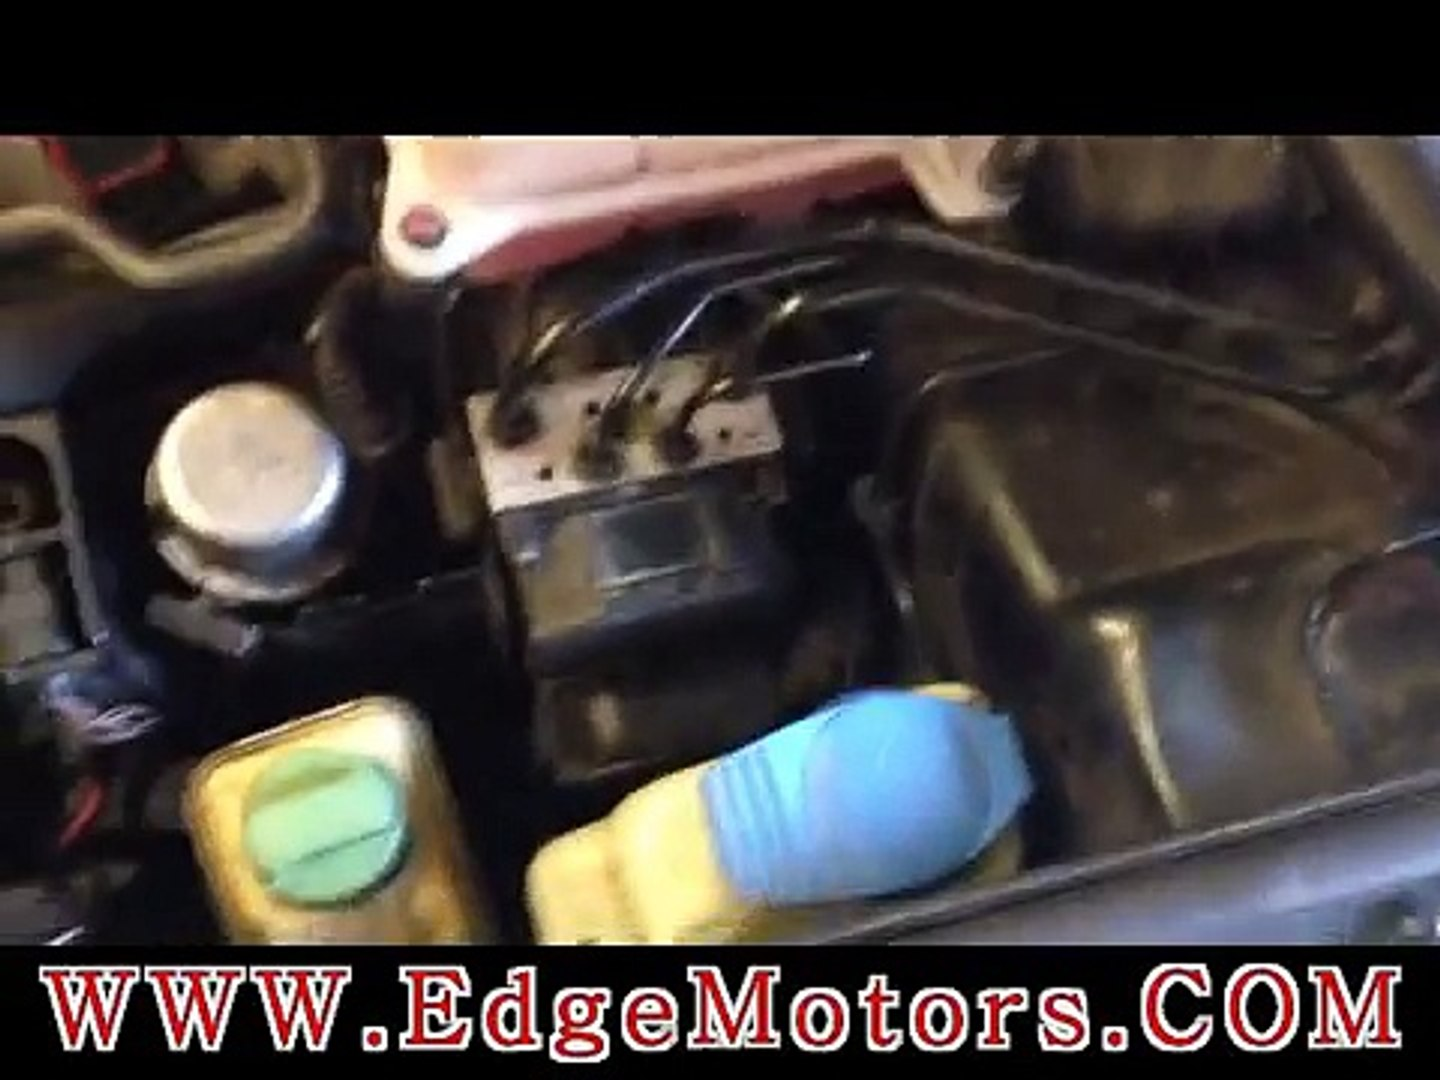 VW Audi ABS control module replacement and programing / coding DIY by Edge  Motors